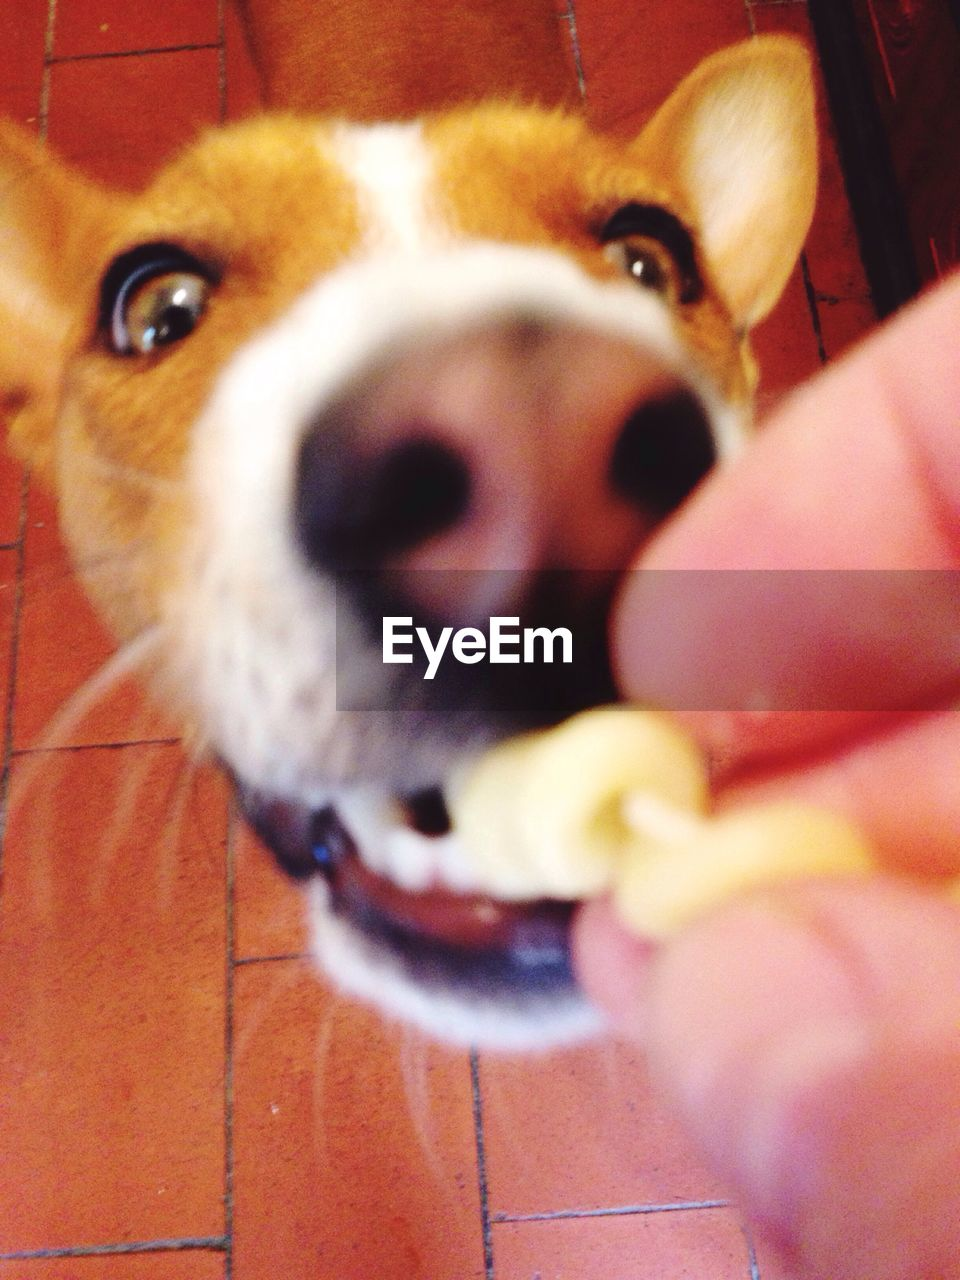 pets, one animal, dog, domestic animals, animal themes, human hand, mammal, human body part, real people, one person, holding, unrecognizable person, indoors, personal perspective, close-up, looking at camera, day, people